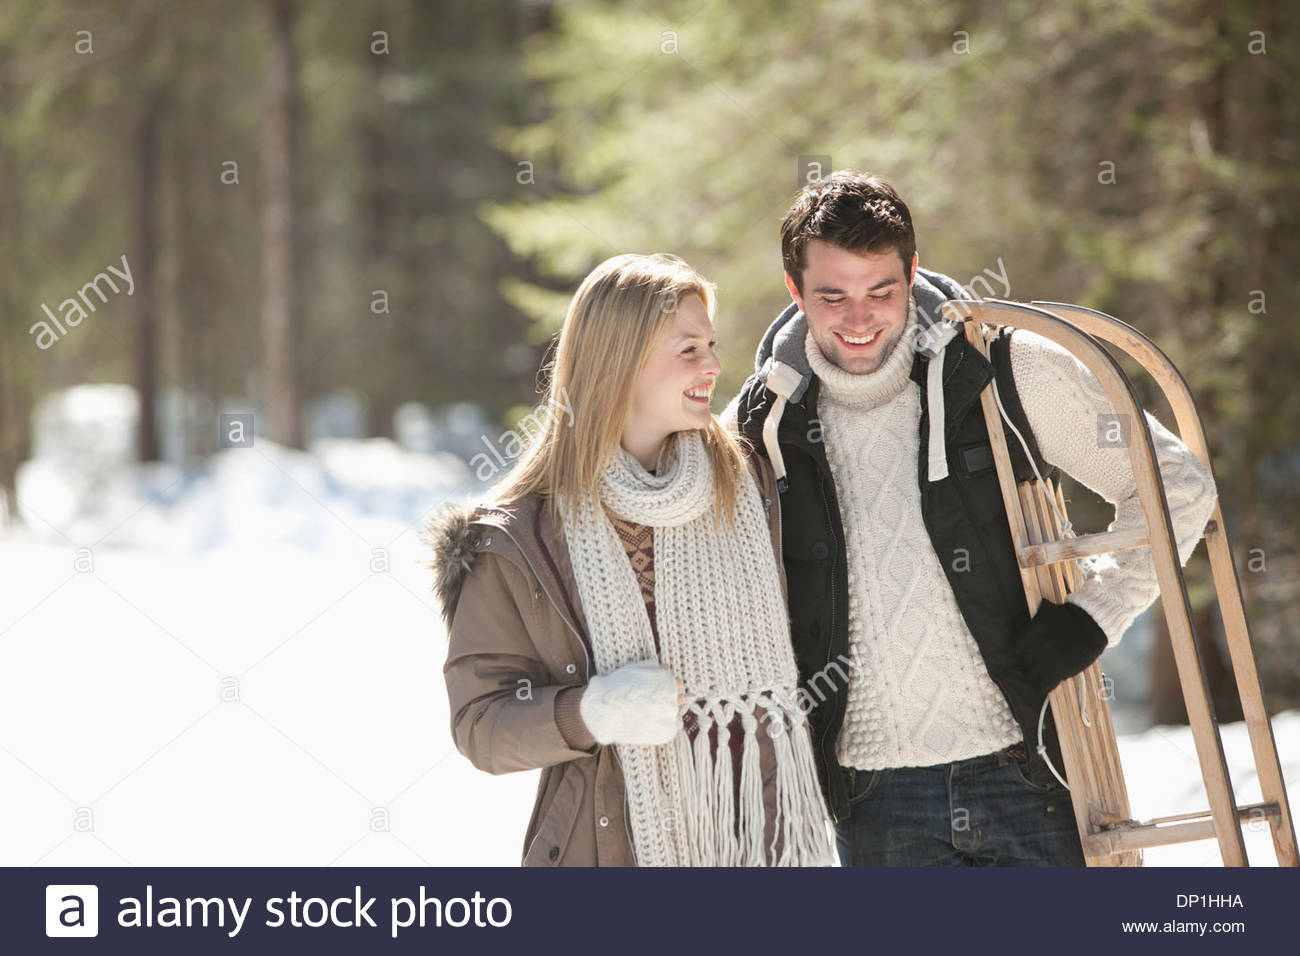 Smiling couple with sled walking in snowy woods - Stock Image